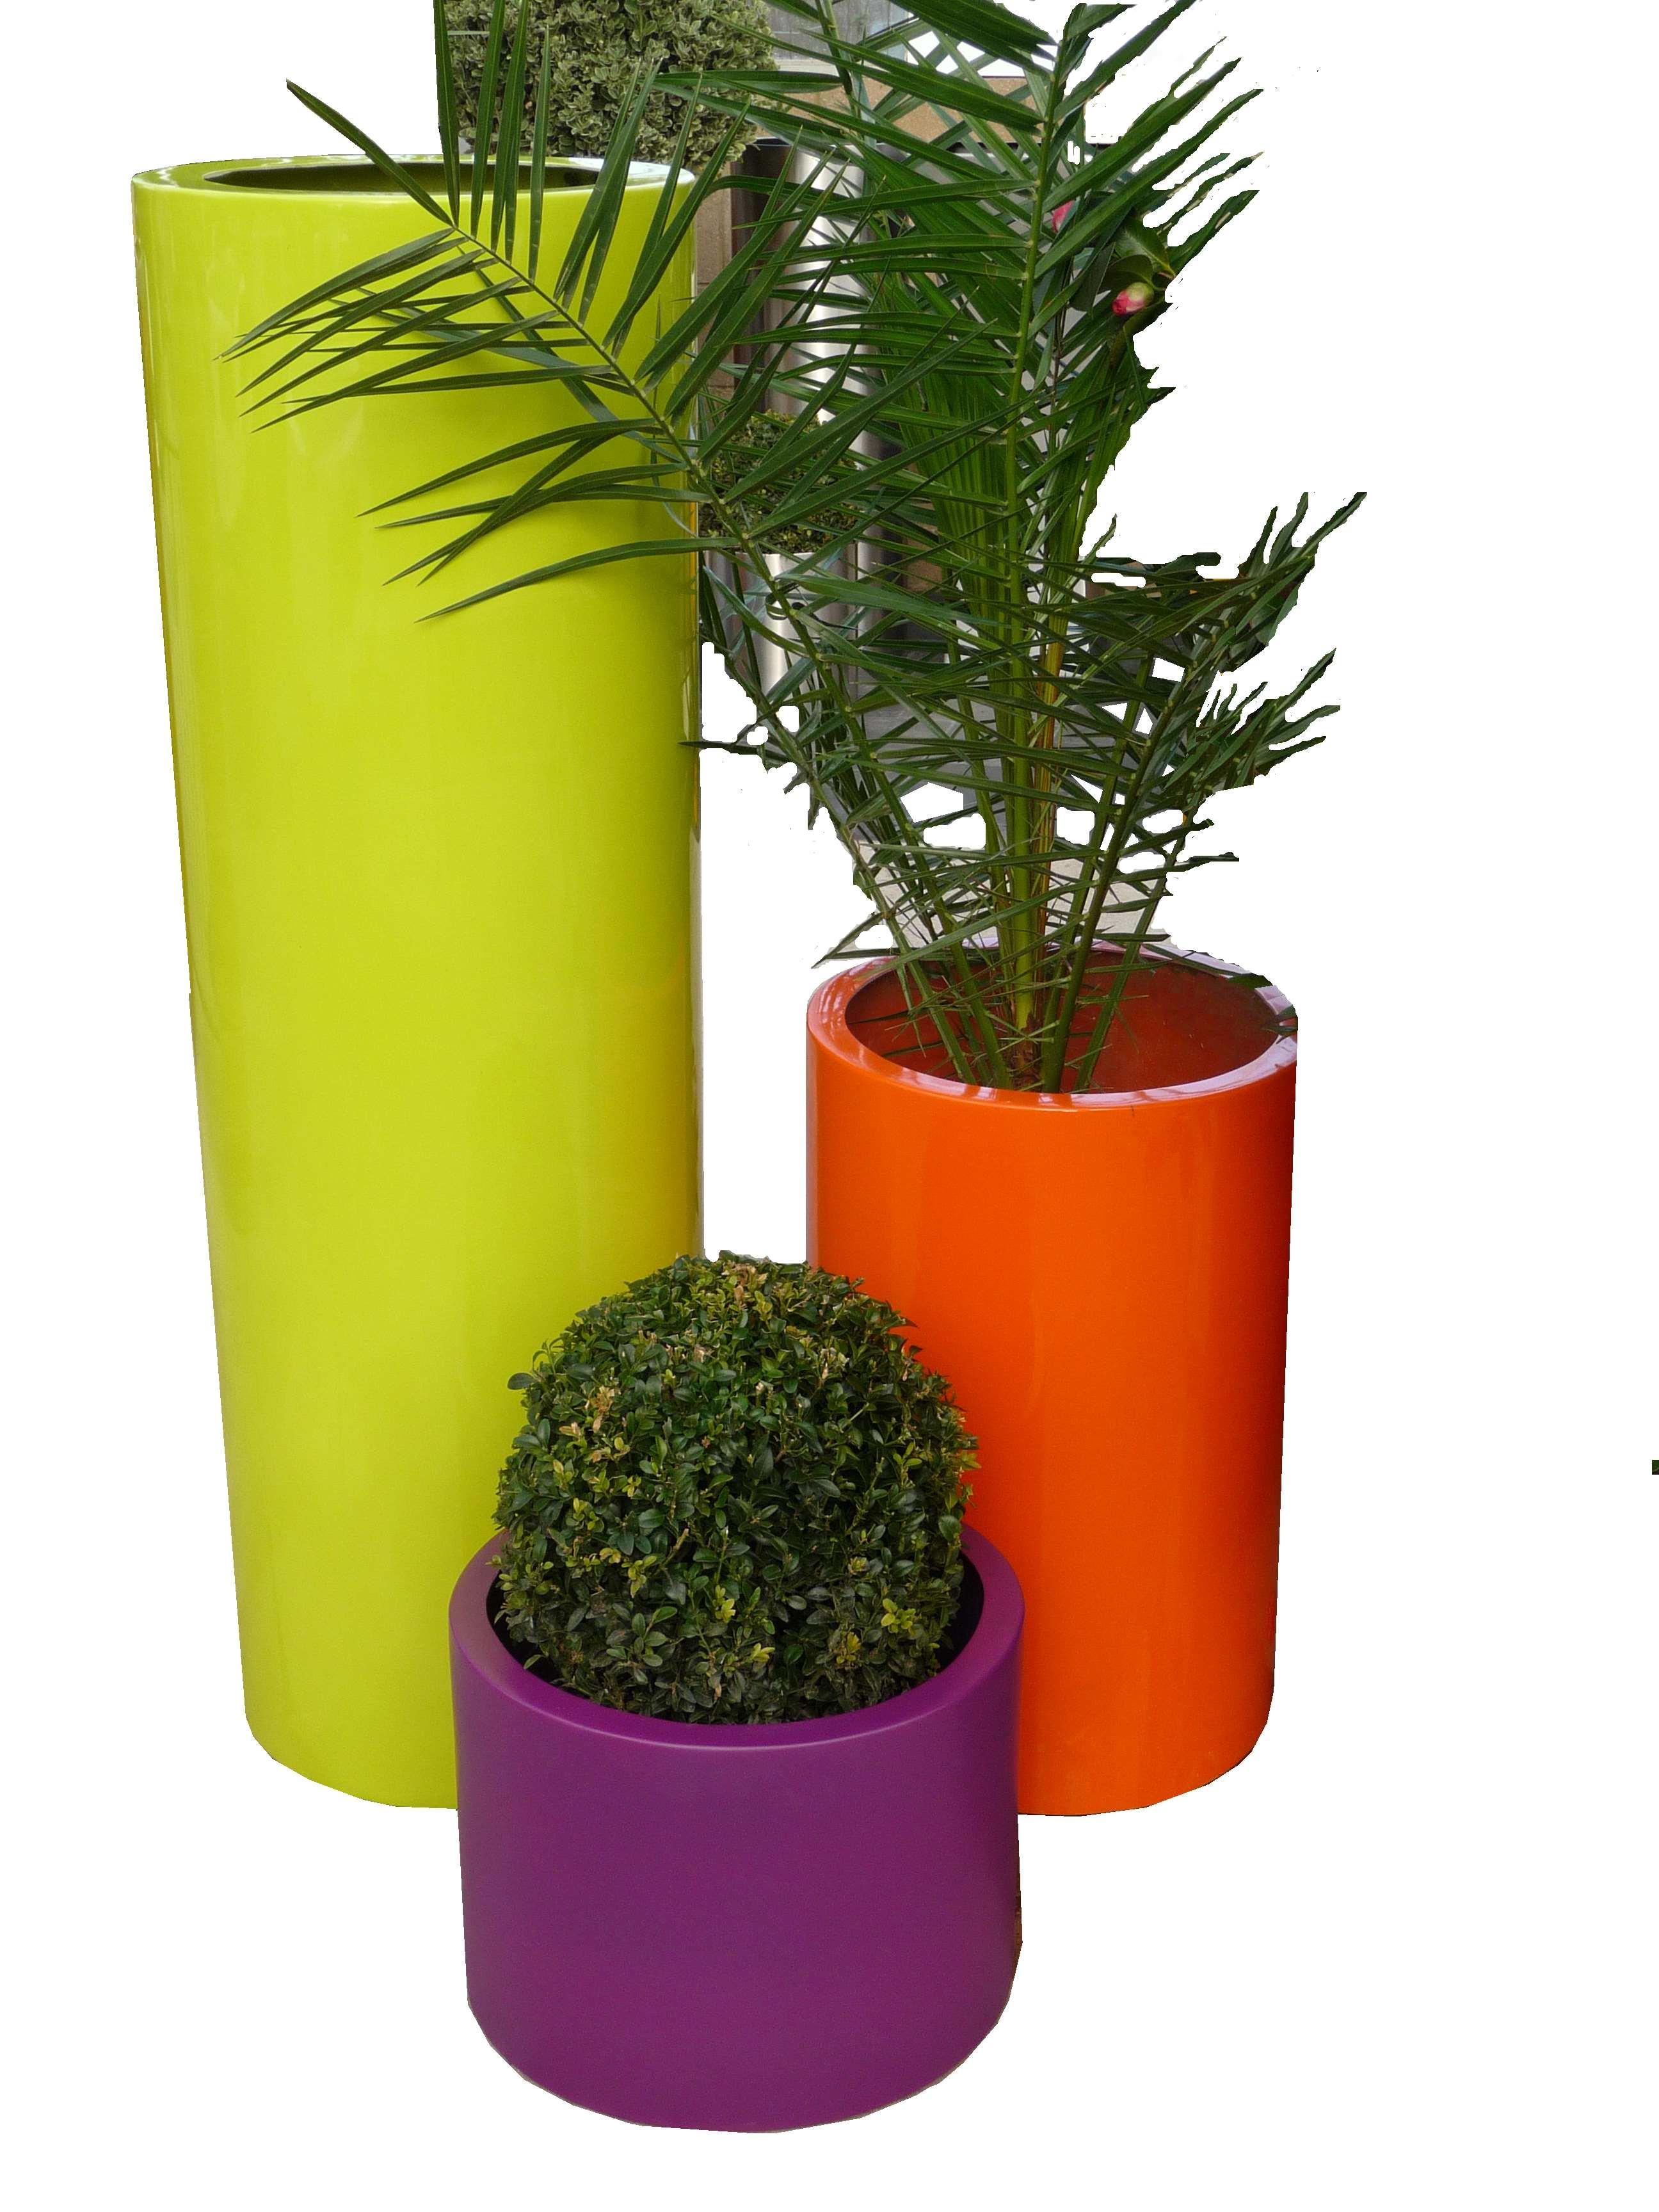 fibreglass_planter_tall_cylinder_planter_modern_contemporary_garden_outdoor_weatherproof_uk_kent_bespoke